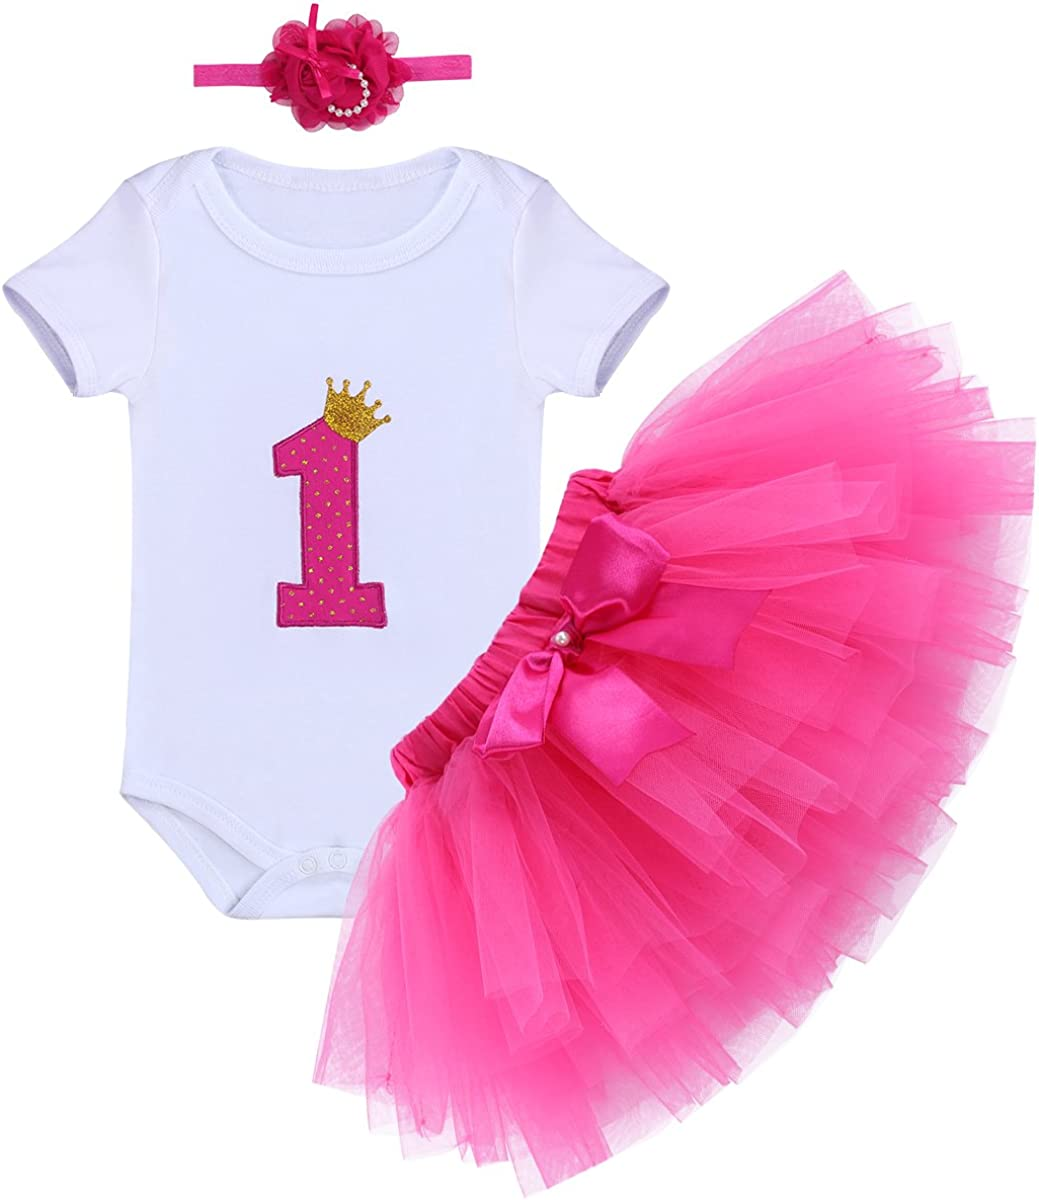 Smash the Cake Outfit Mum Toddler Skirts First Birthday Cupcake Theme Outfit